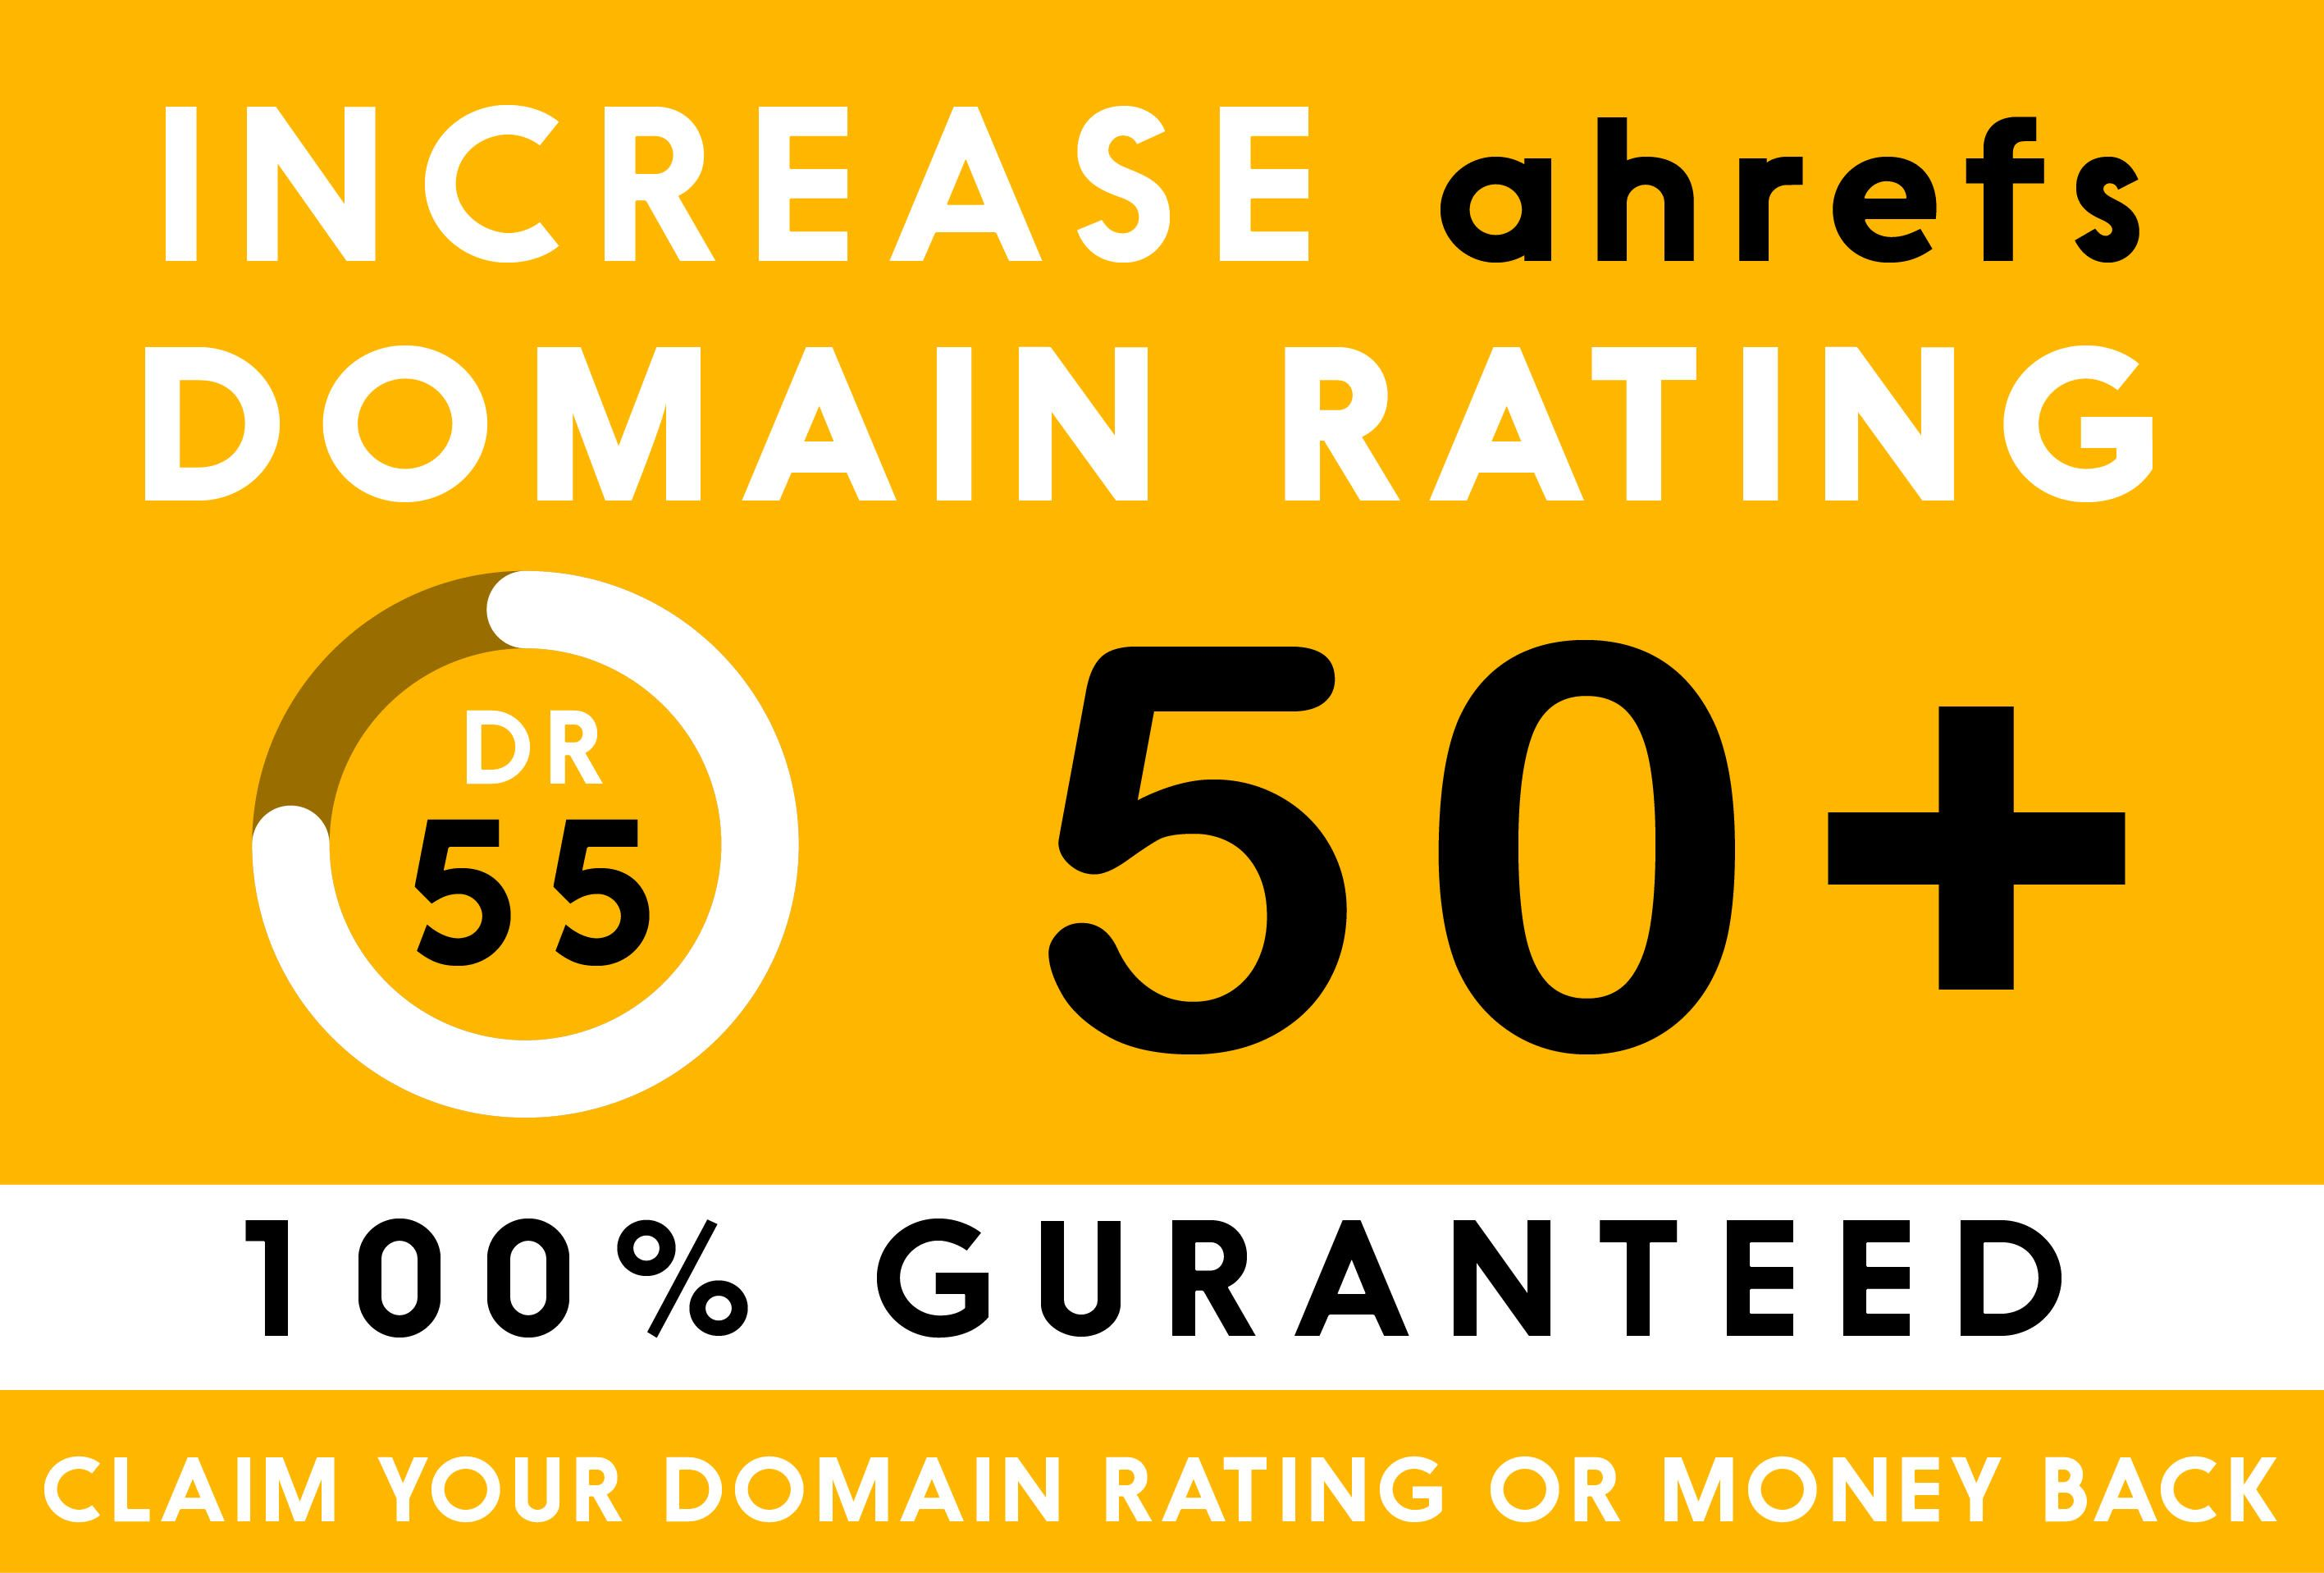 I will increase domain rating and increase ahrefs DR upto 50